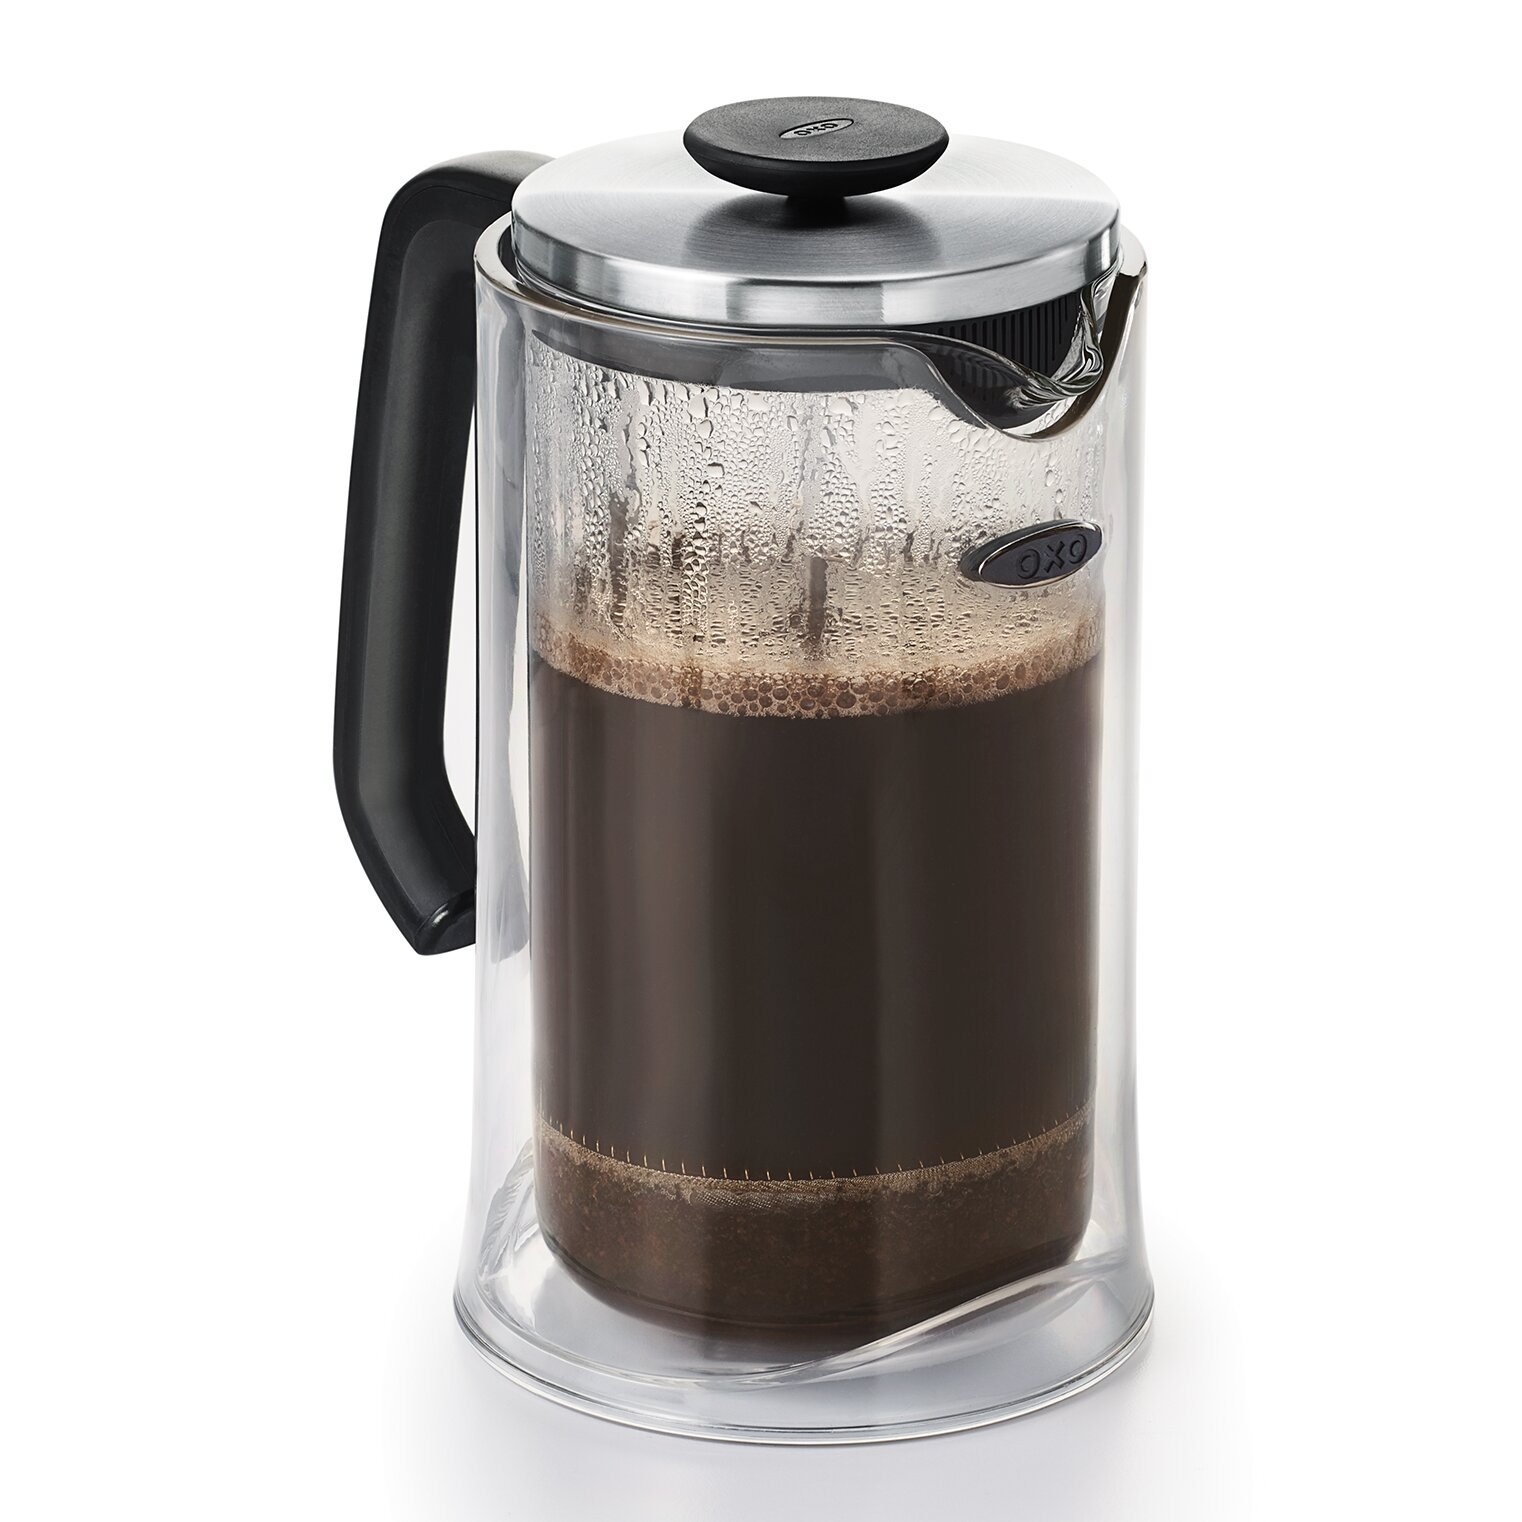 Oxo Coffee Maker Reviews : OXO 8-Cup Good Grips French Press Coffee Maker Wayfair